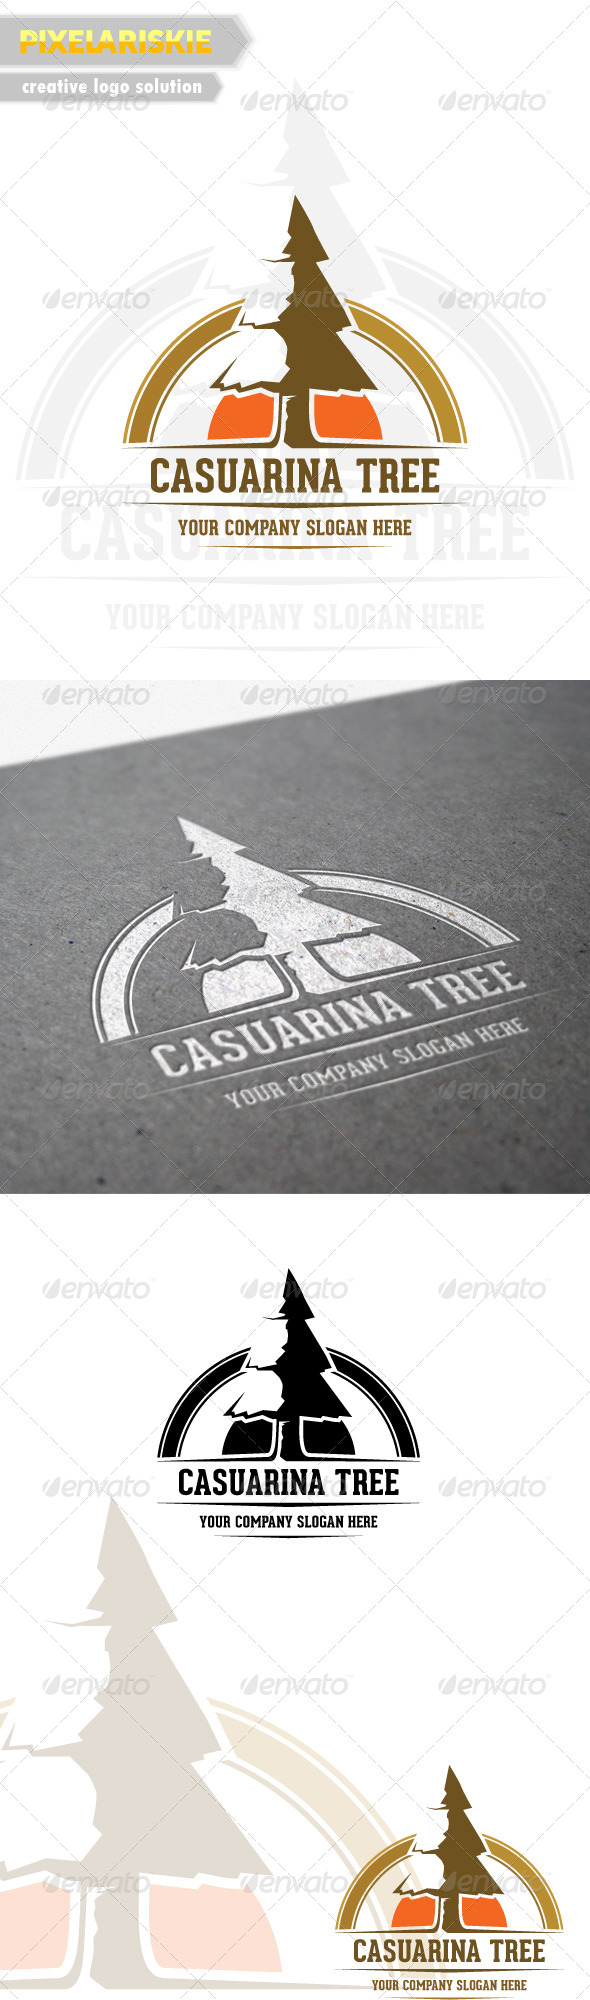 GraphicRiver Casuarina Tree Logo 6514135